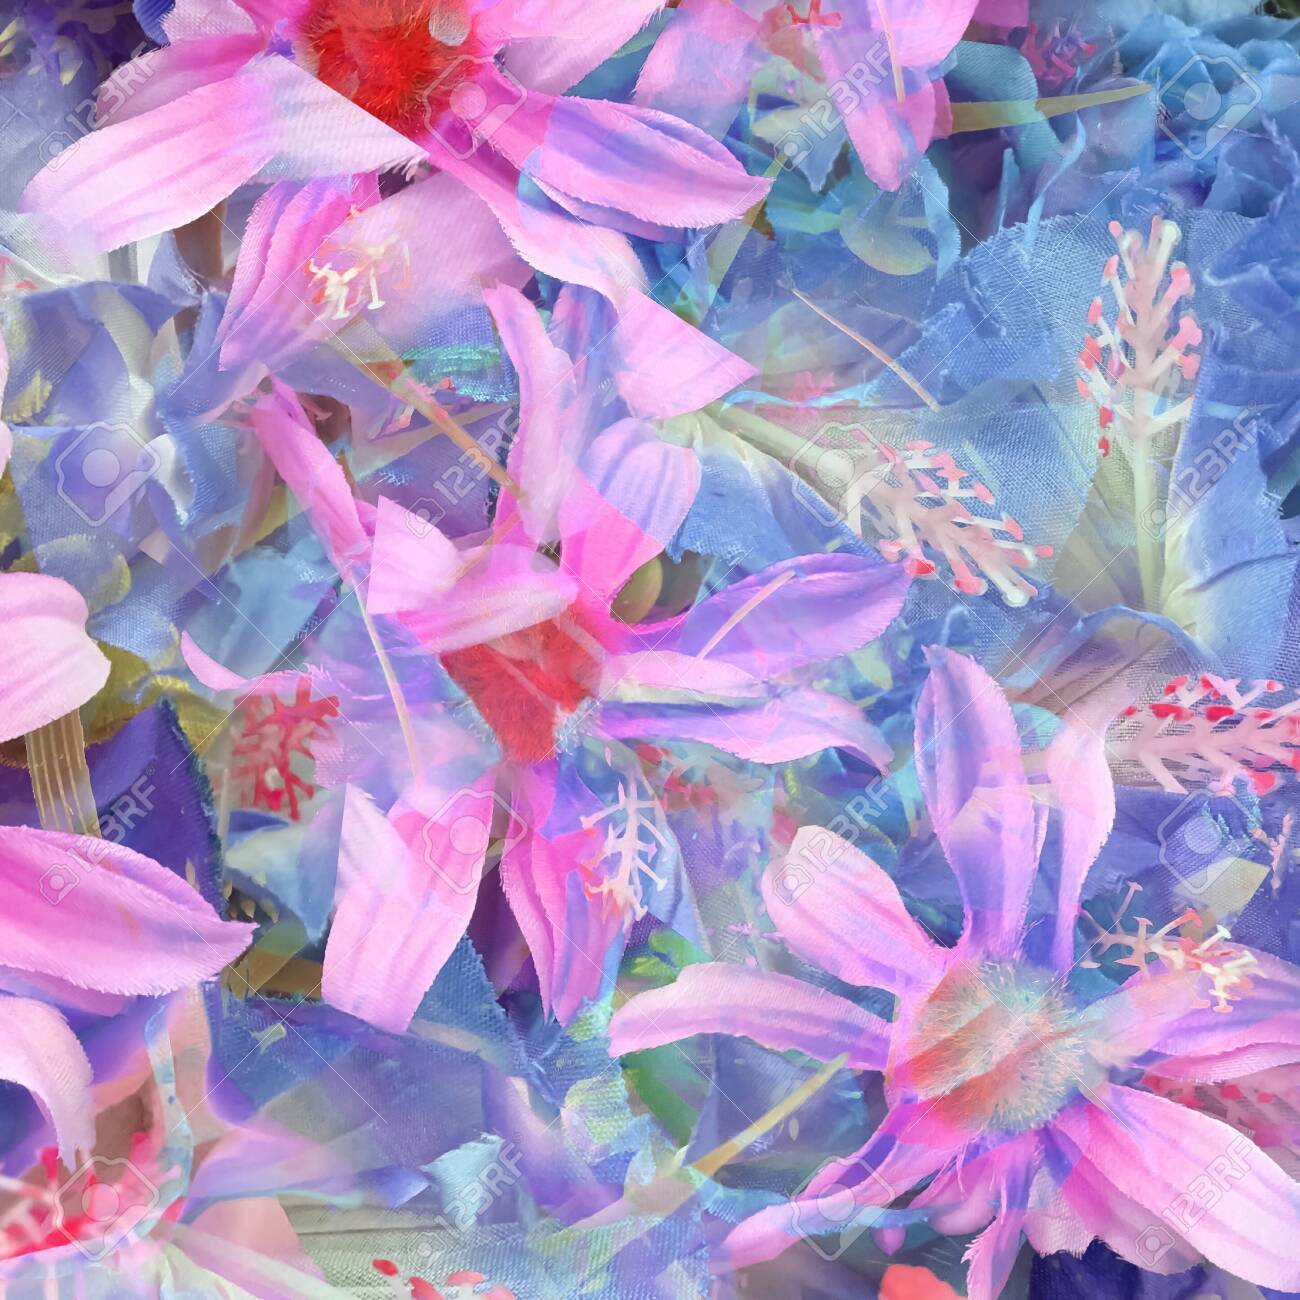 blooming pink and blue daisy flower abstract background - 139560488